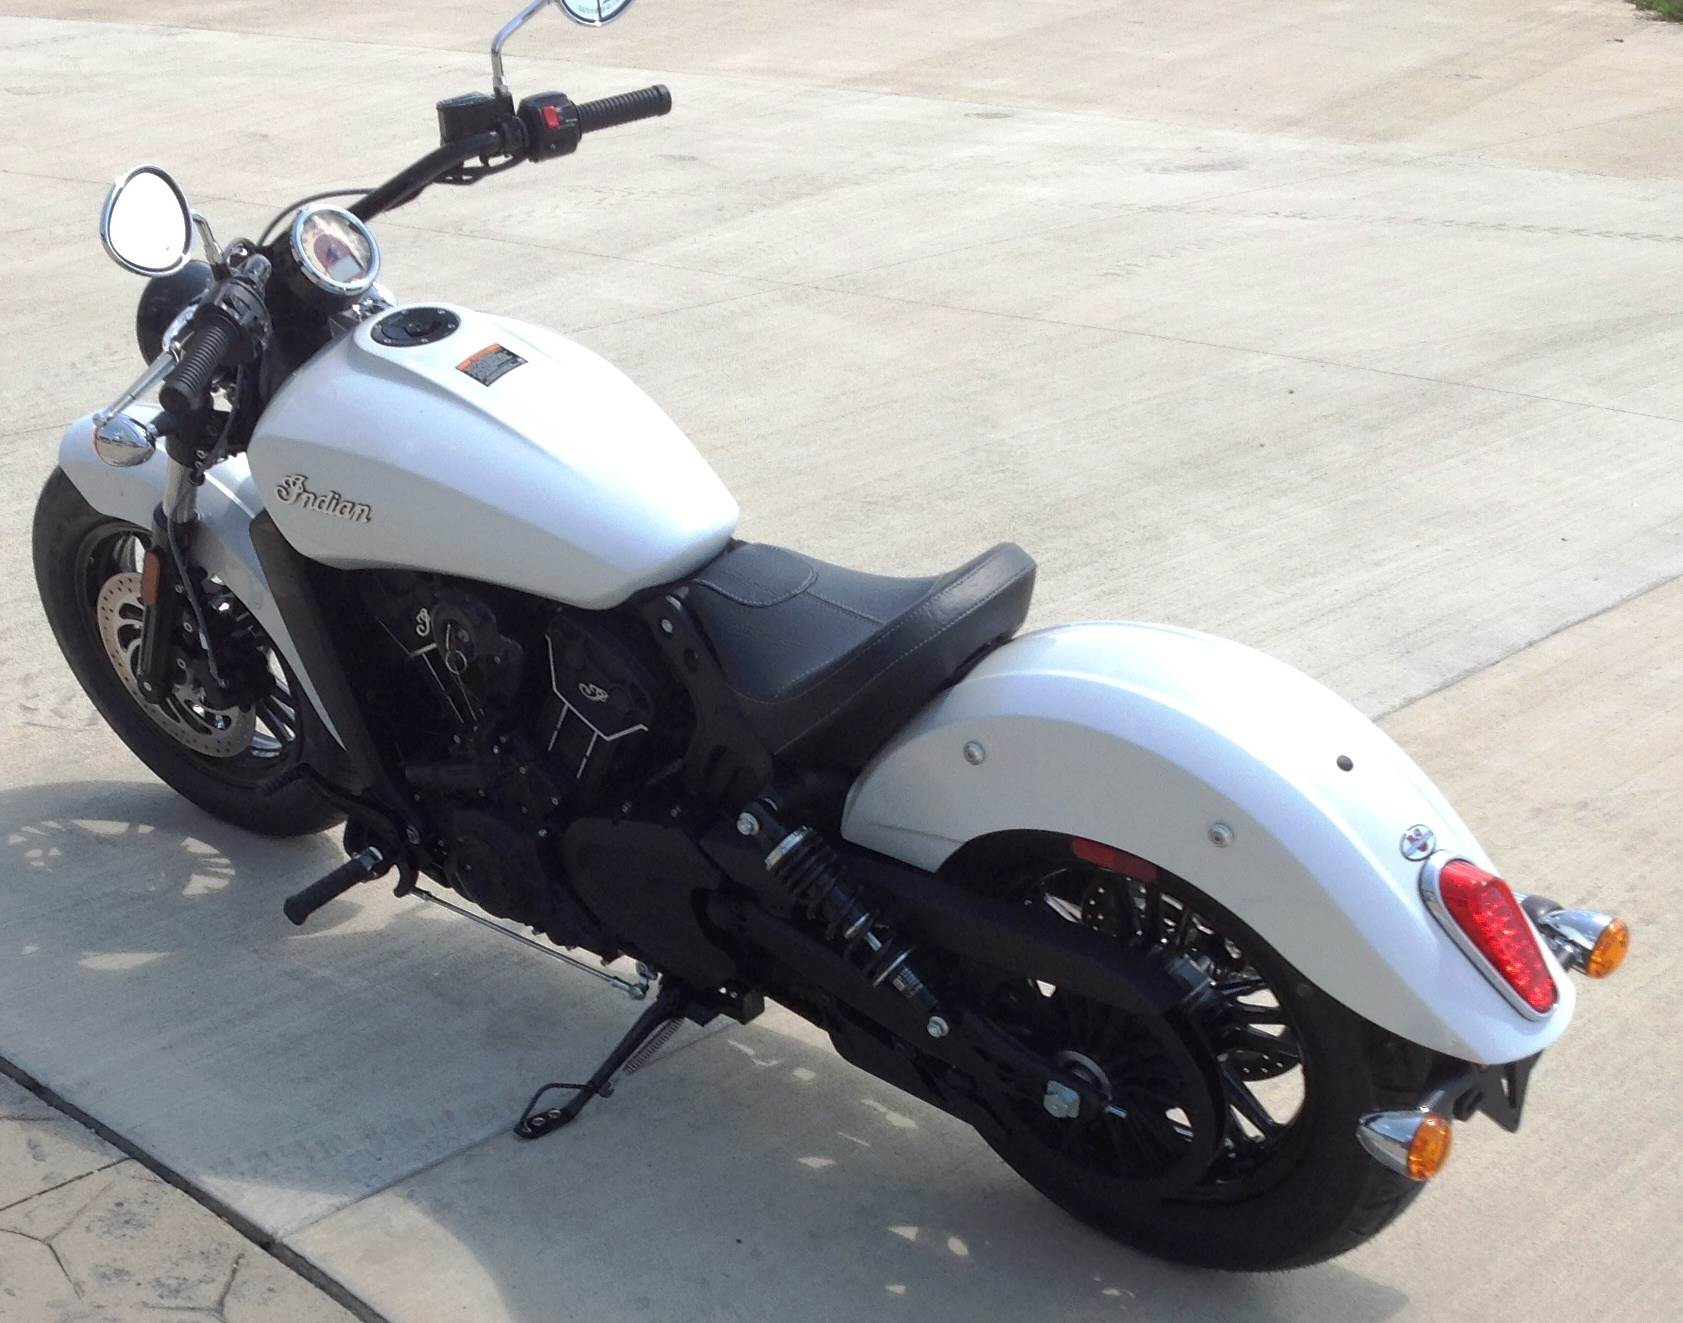 2017 Indian Scout Sixty 5